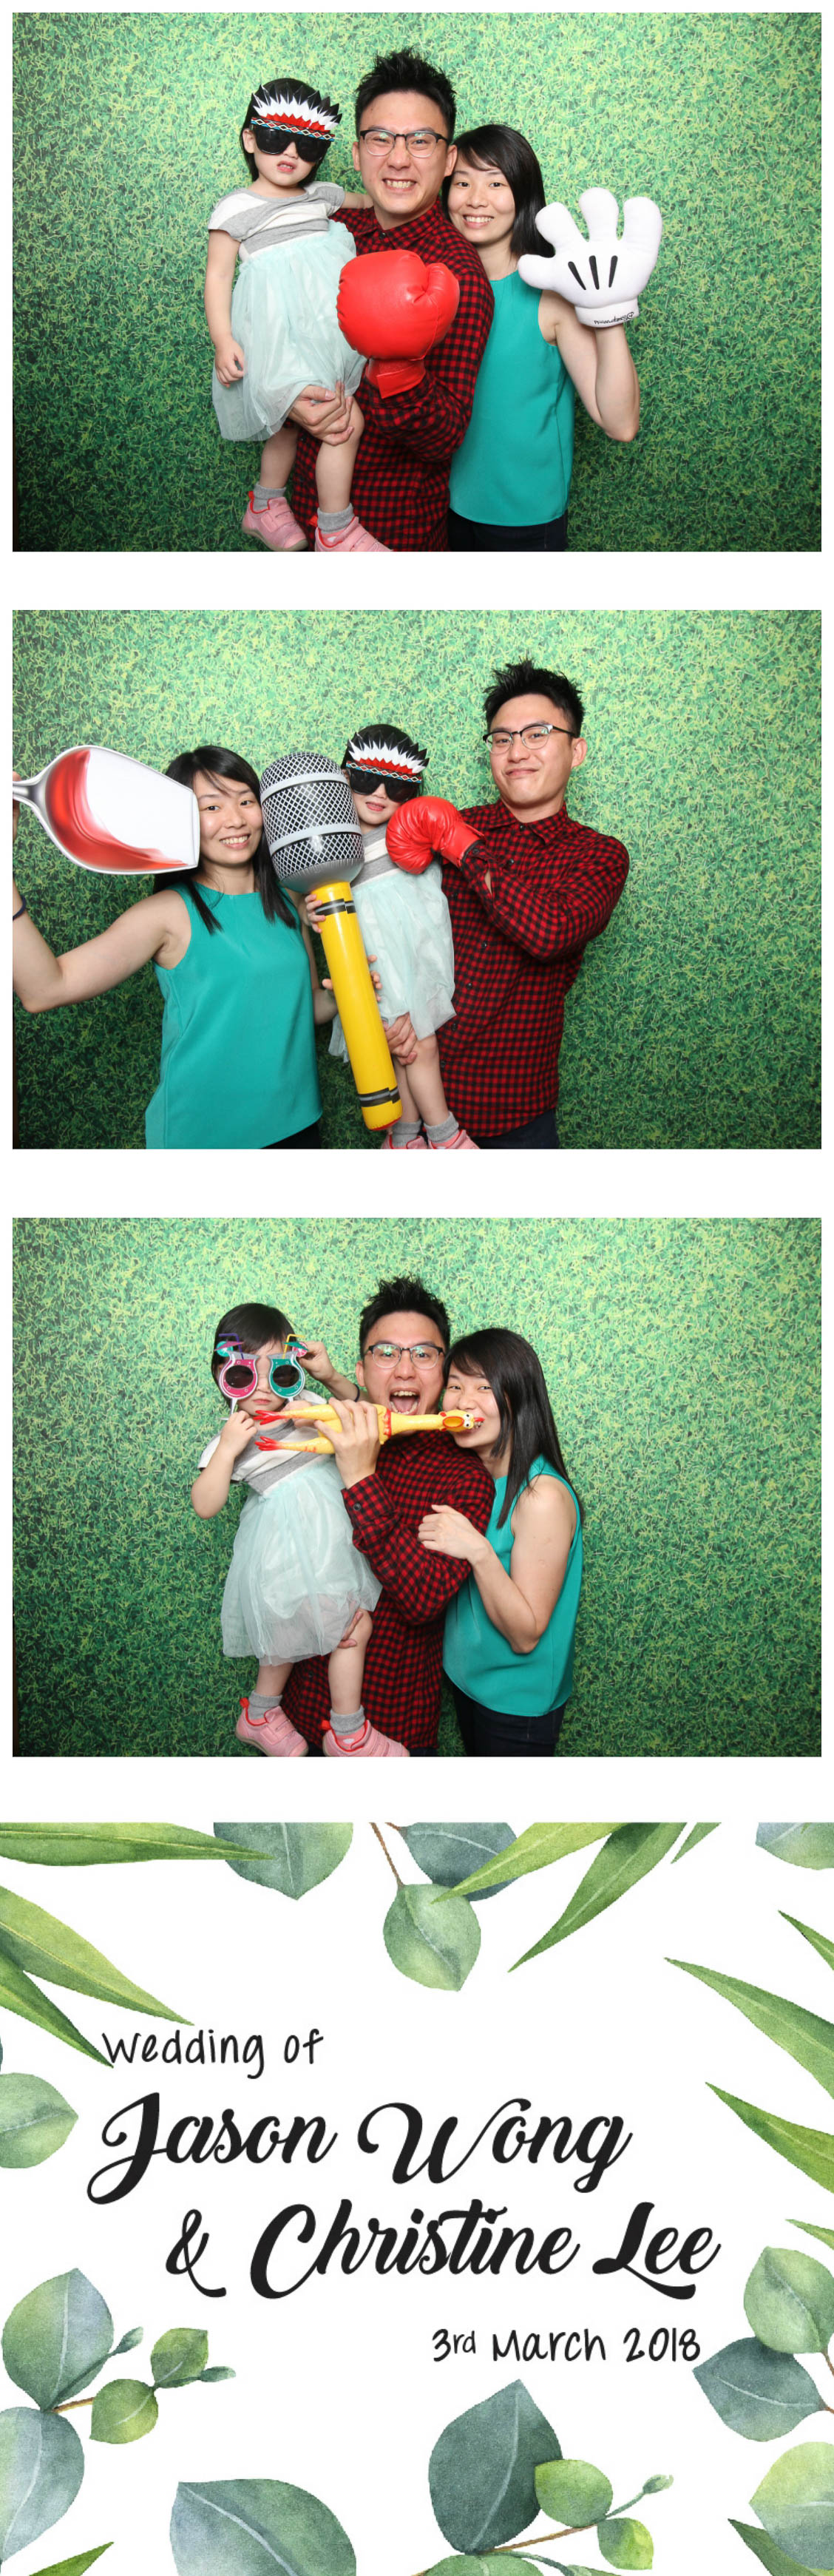 Photobooth 0302-31